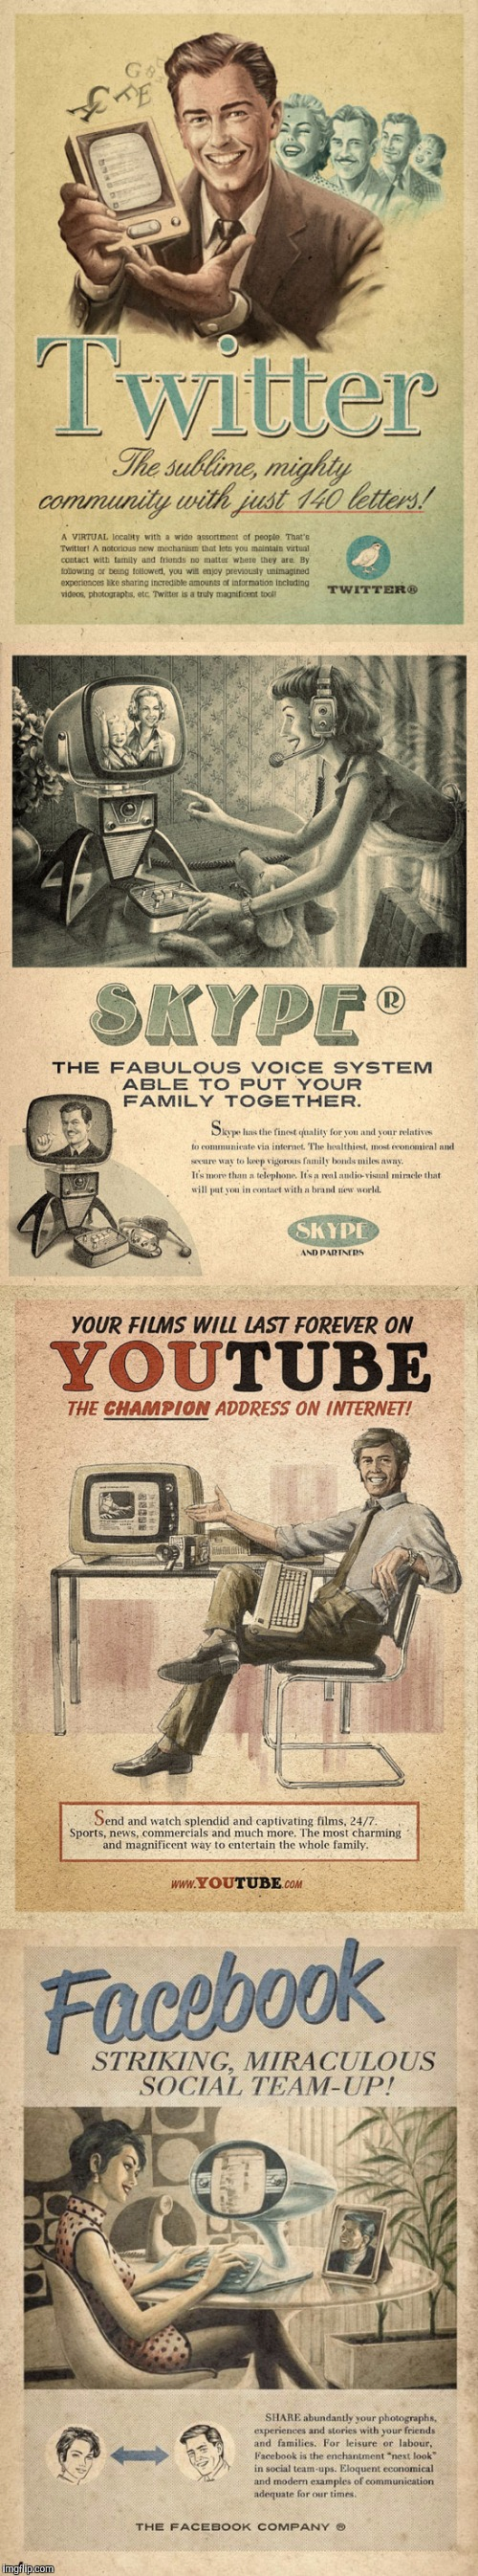 They had crazy technology back then. (Old ad week) | . | image tagged in old ad week | made w/ Imgflip meme maker